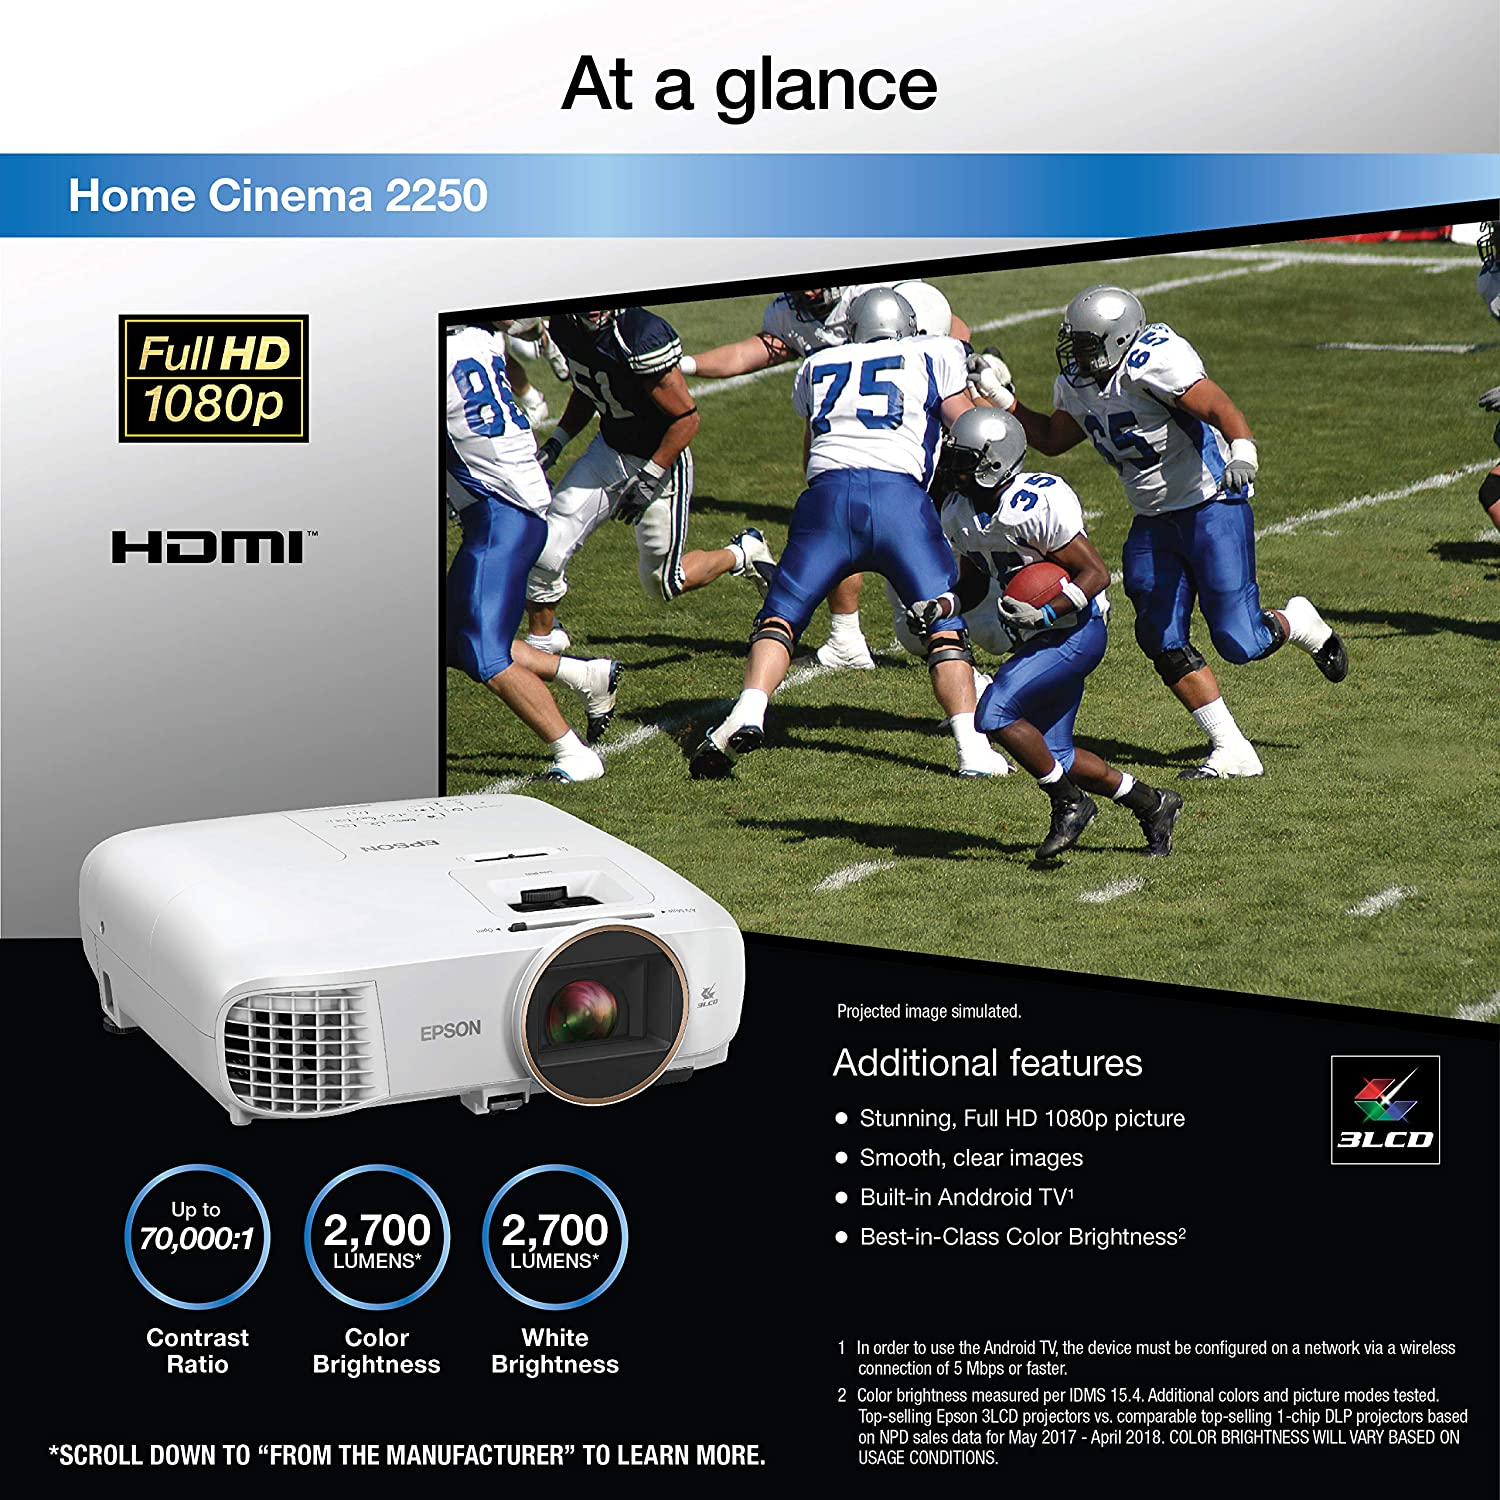 Epson Home Cinema 2250 3LCD Full HD 1080p Projector with Android TV